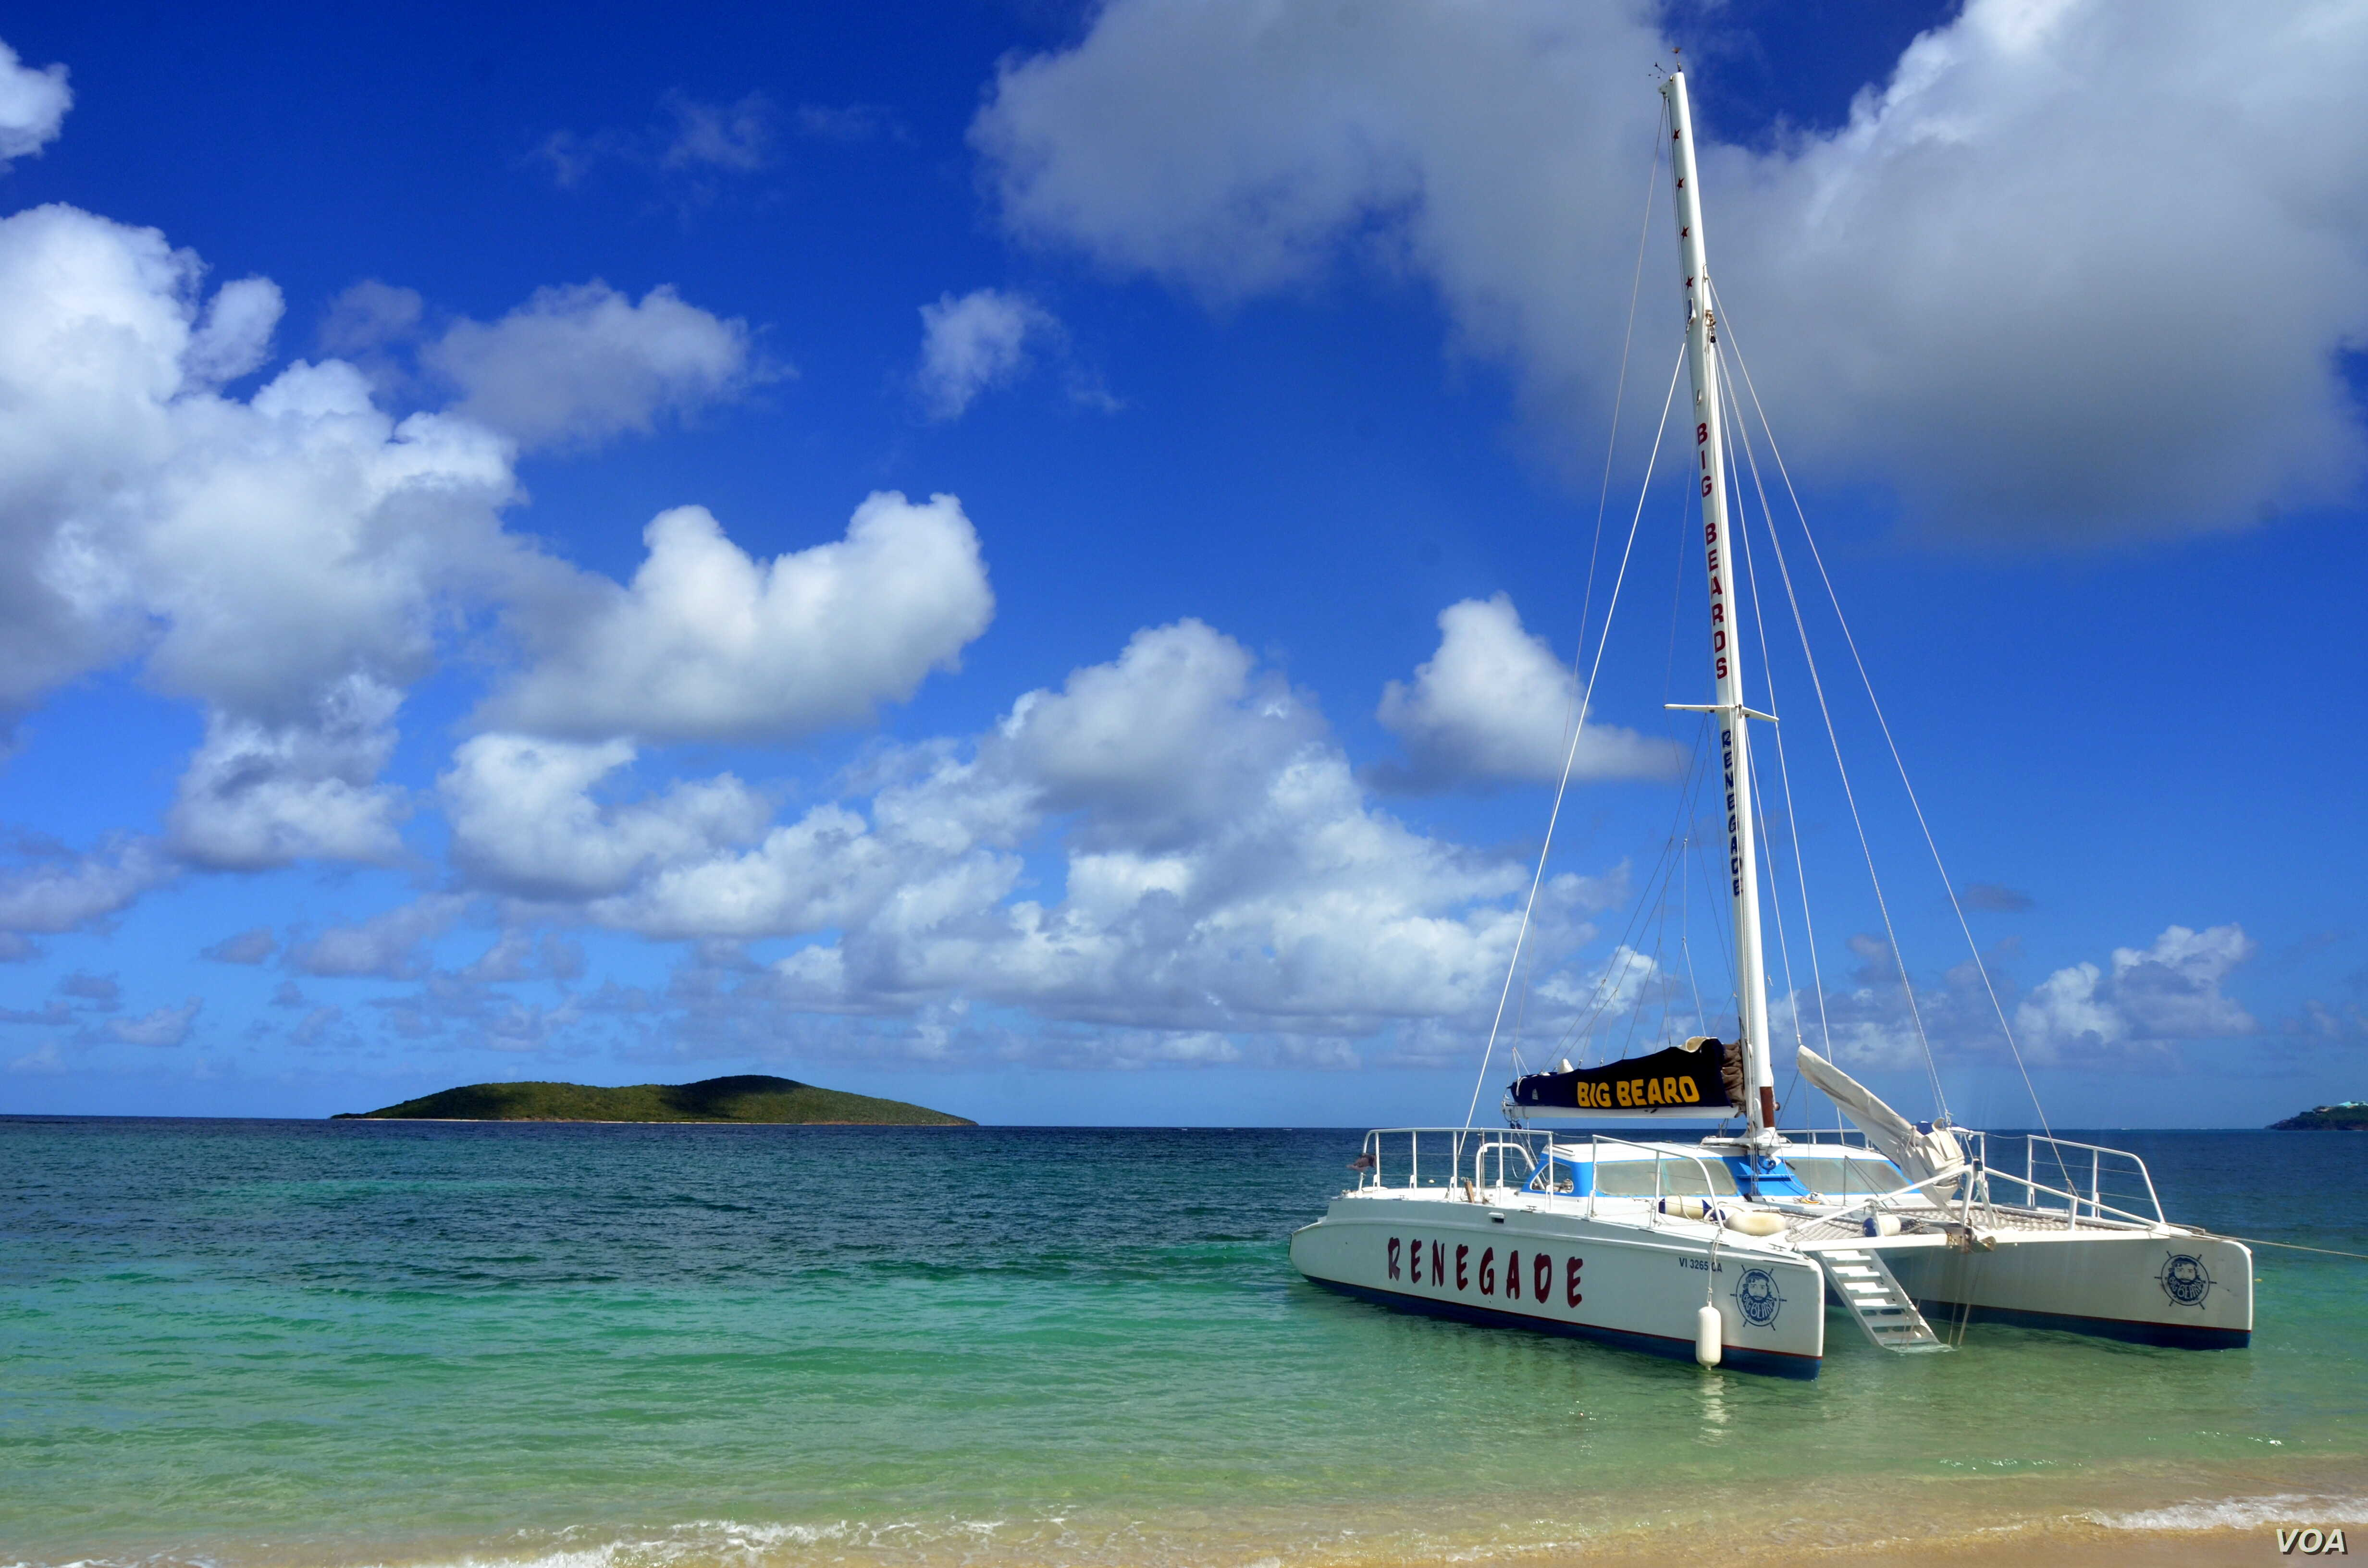 Buck Island is only accessible by boat, so companies like Big Beard's Adventure Tours ferry snorkelers out to the reef.